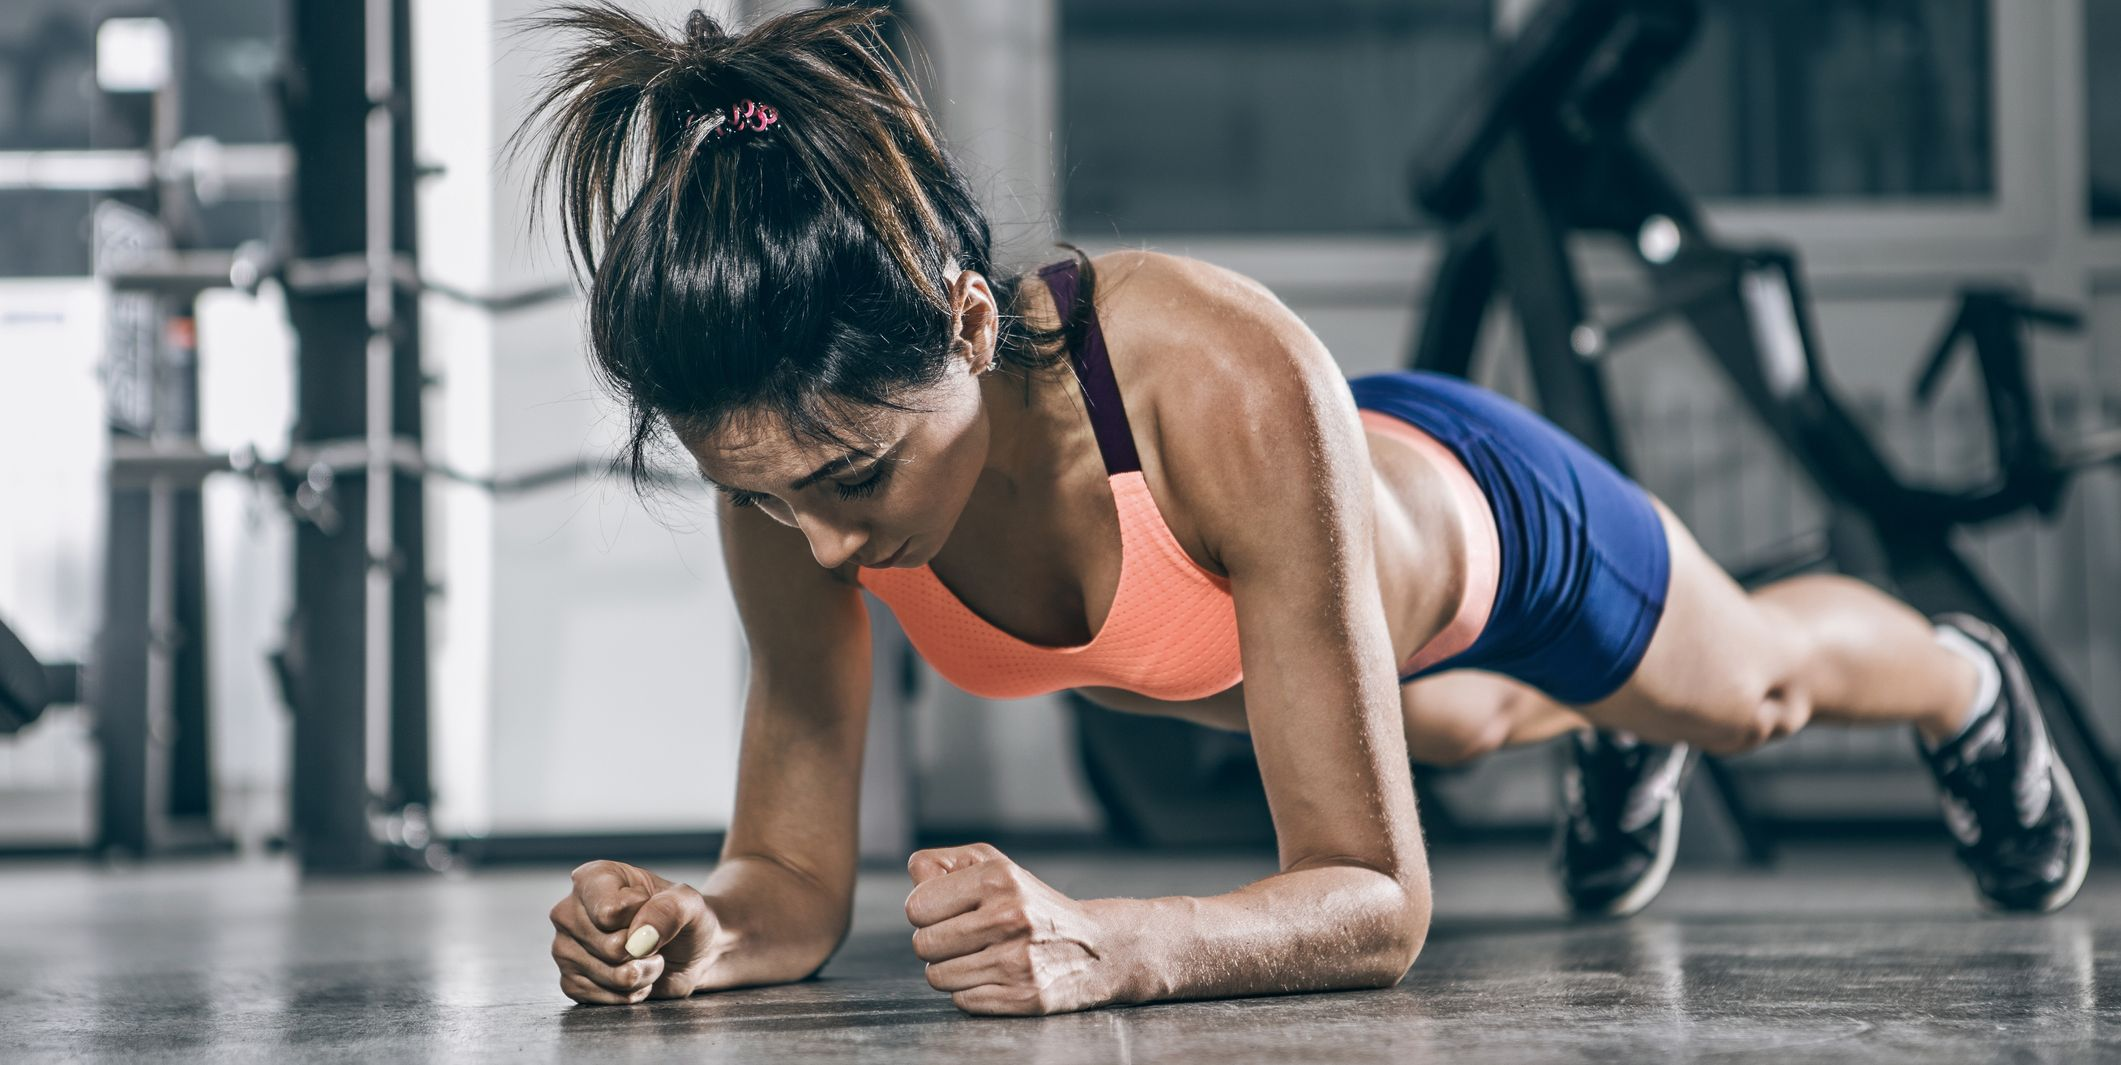 Sport. Muscular woman on a plank position.